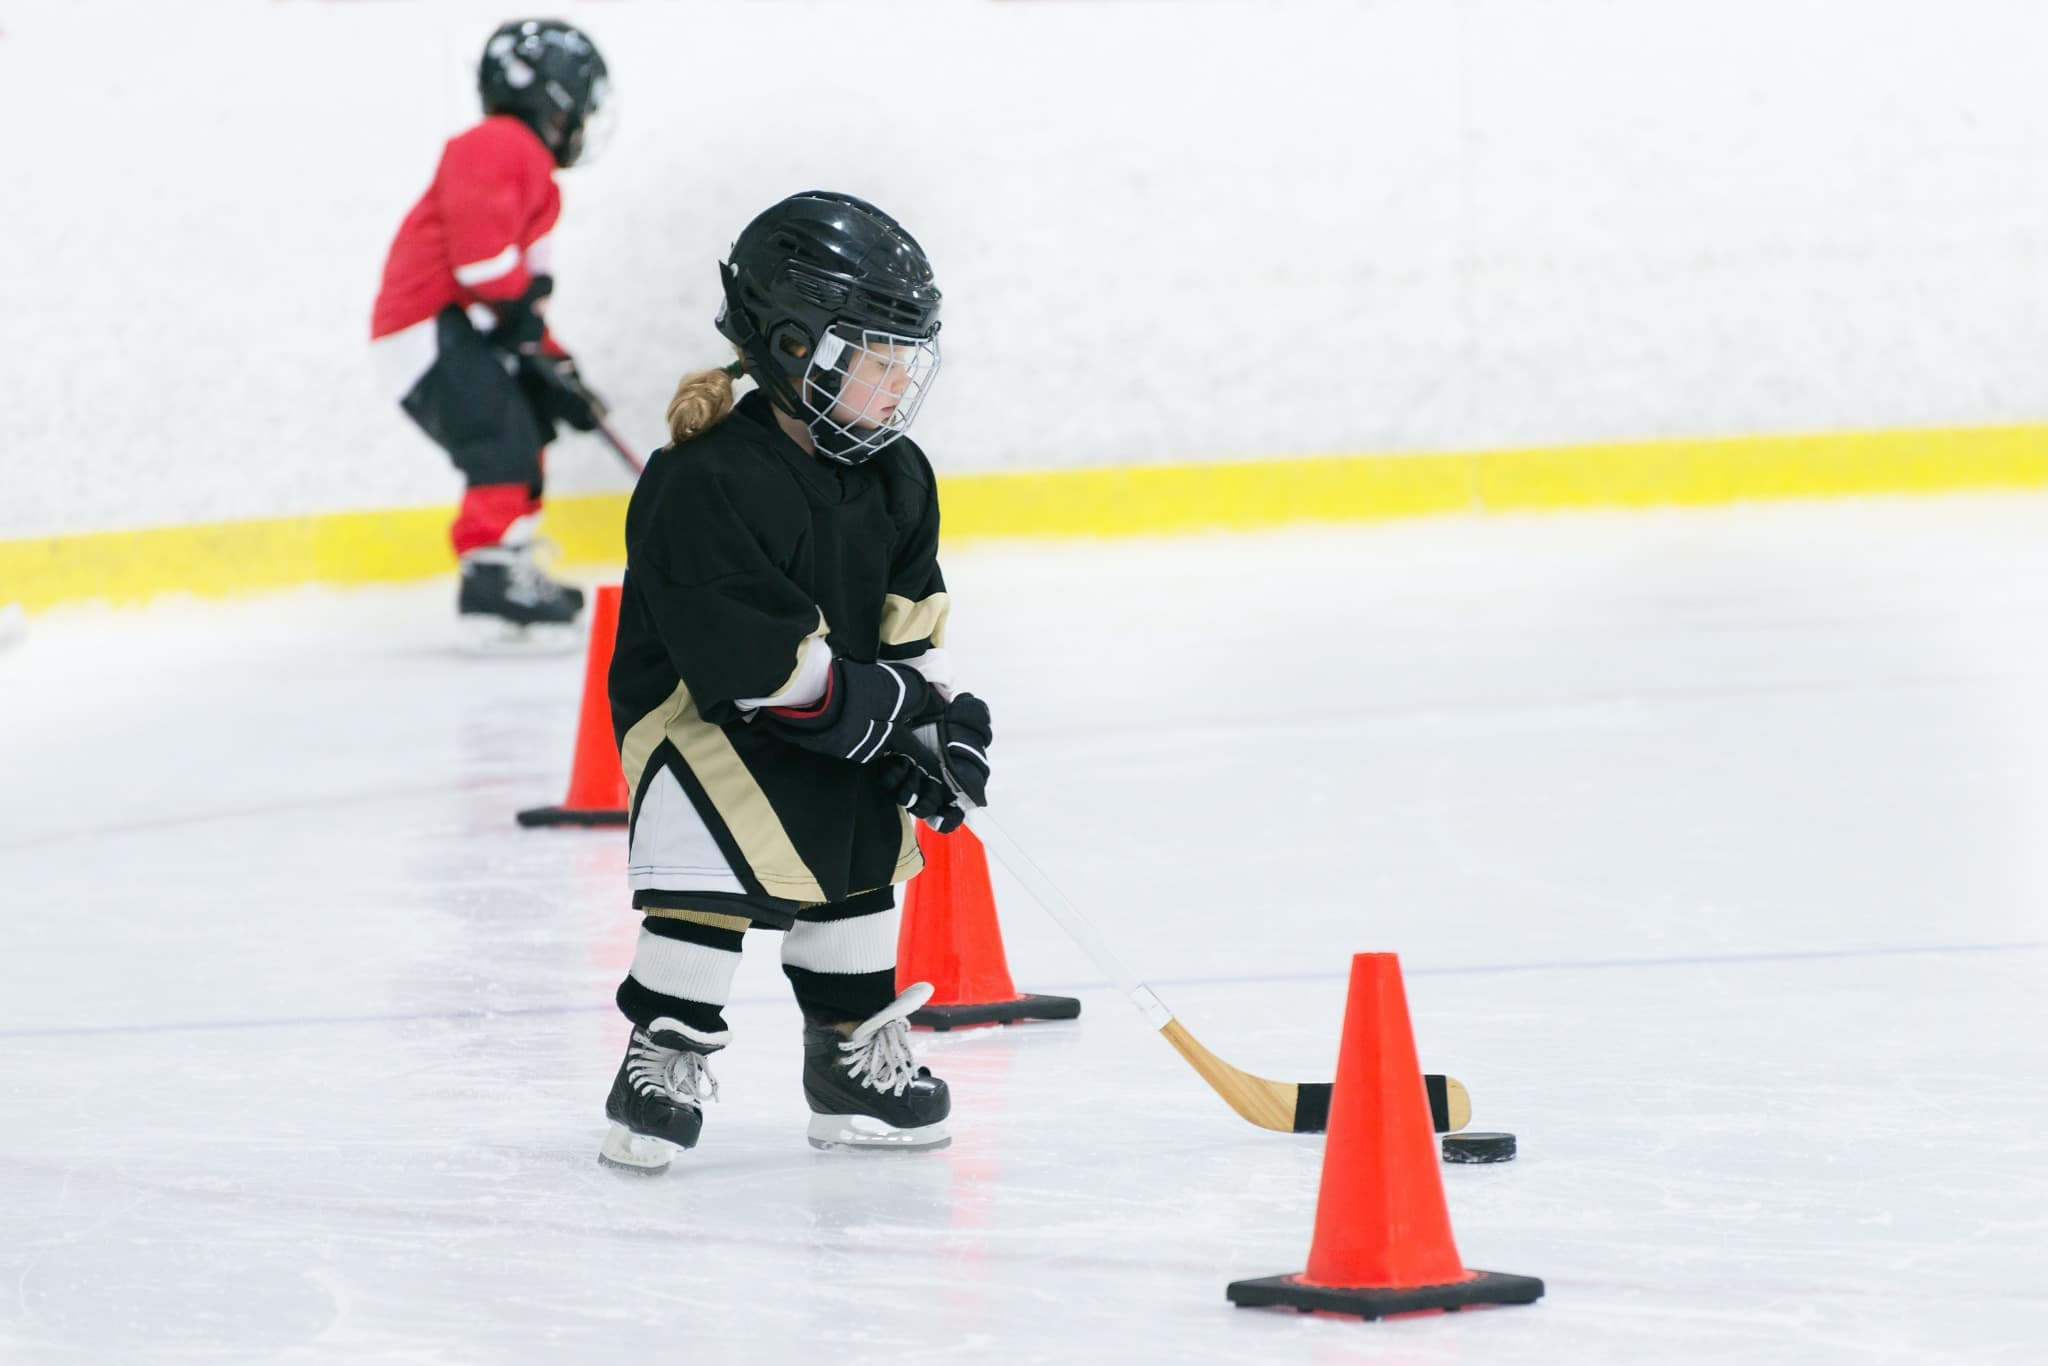 A girl playing hockey and doing the figure 8 drill